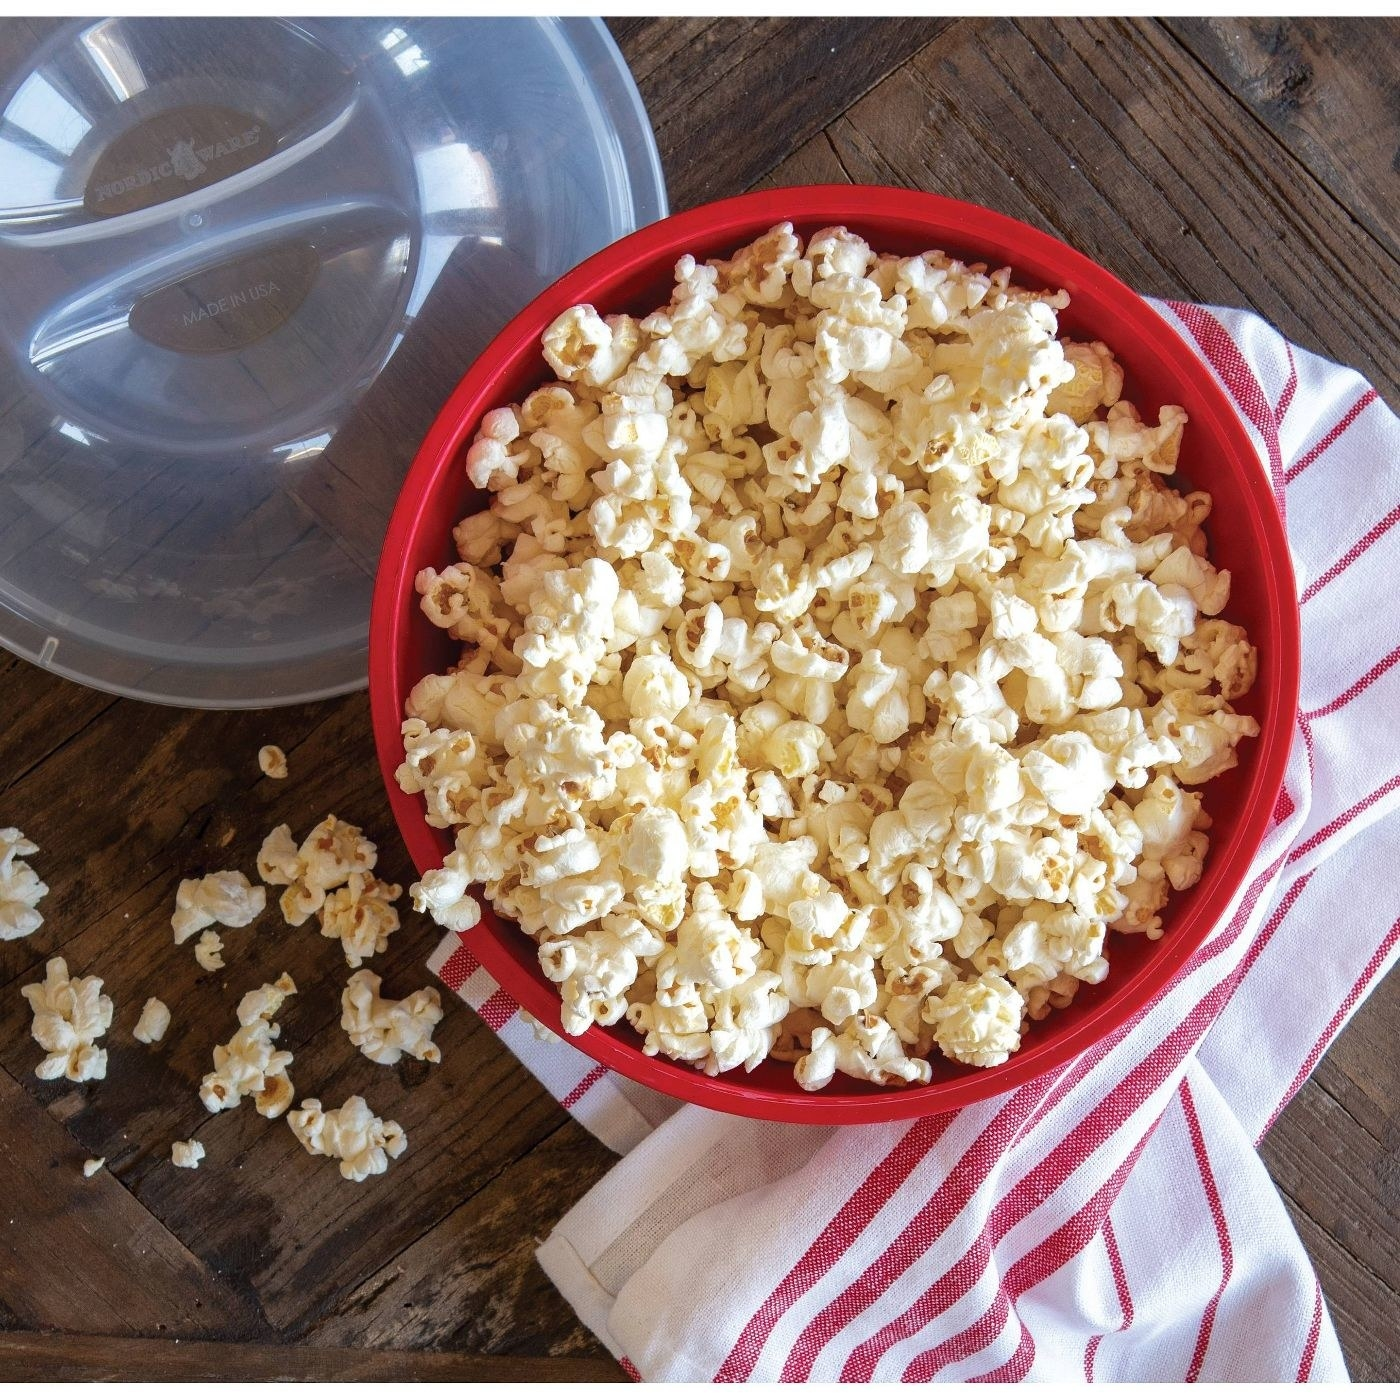 red popcorn maker with fresh popcorn in it